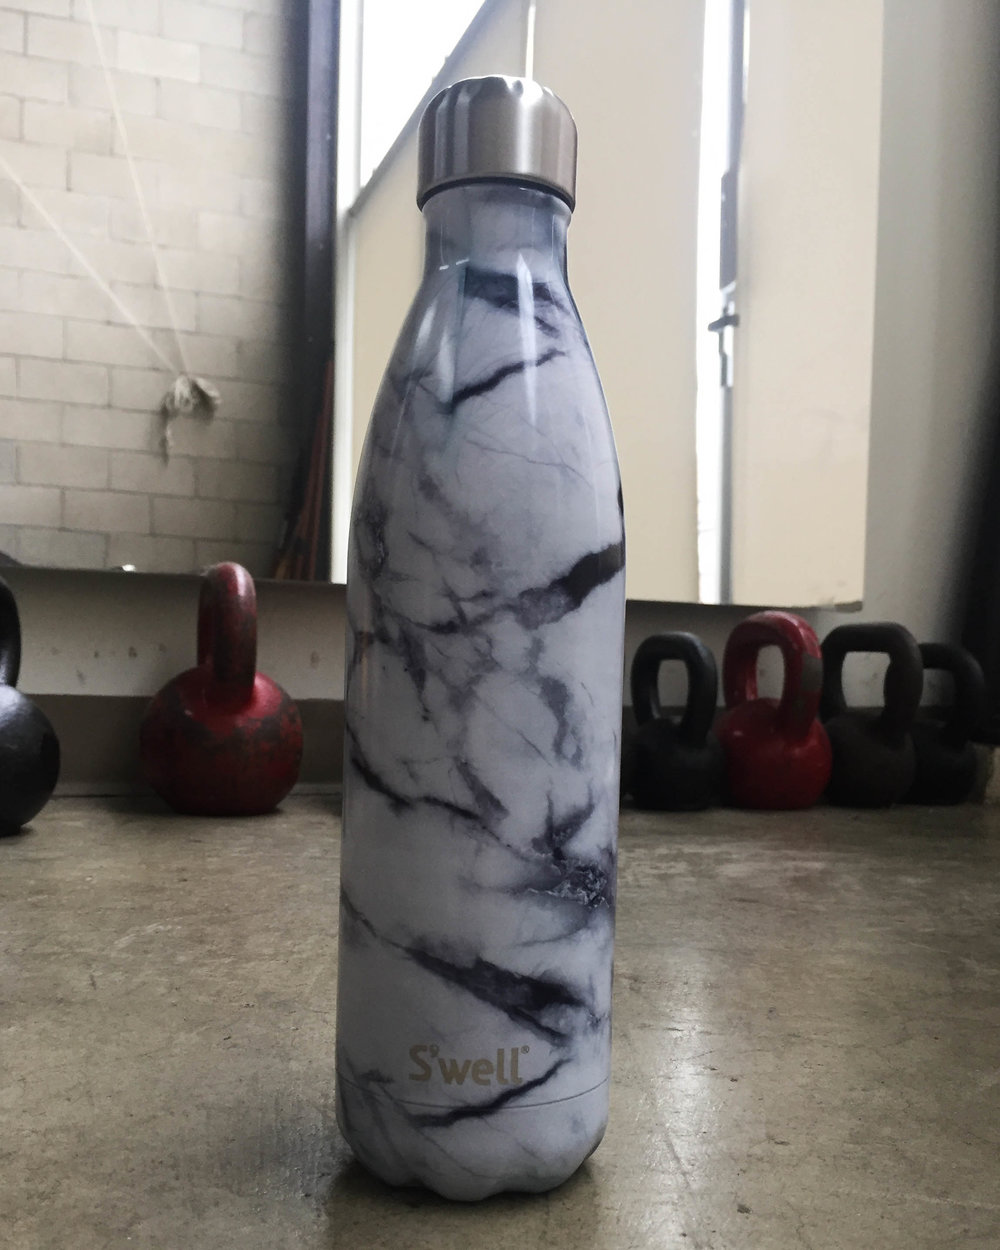 S'well Bottle - 25oz. -  http://amzn.to/2myIfsb